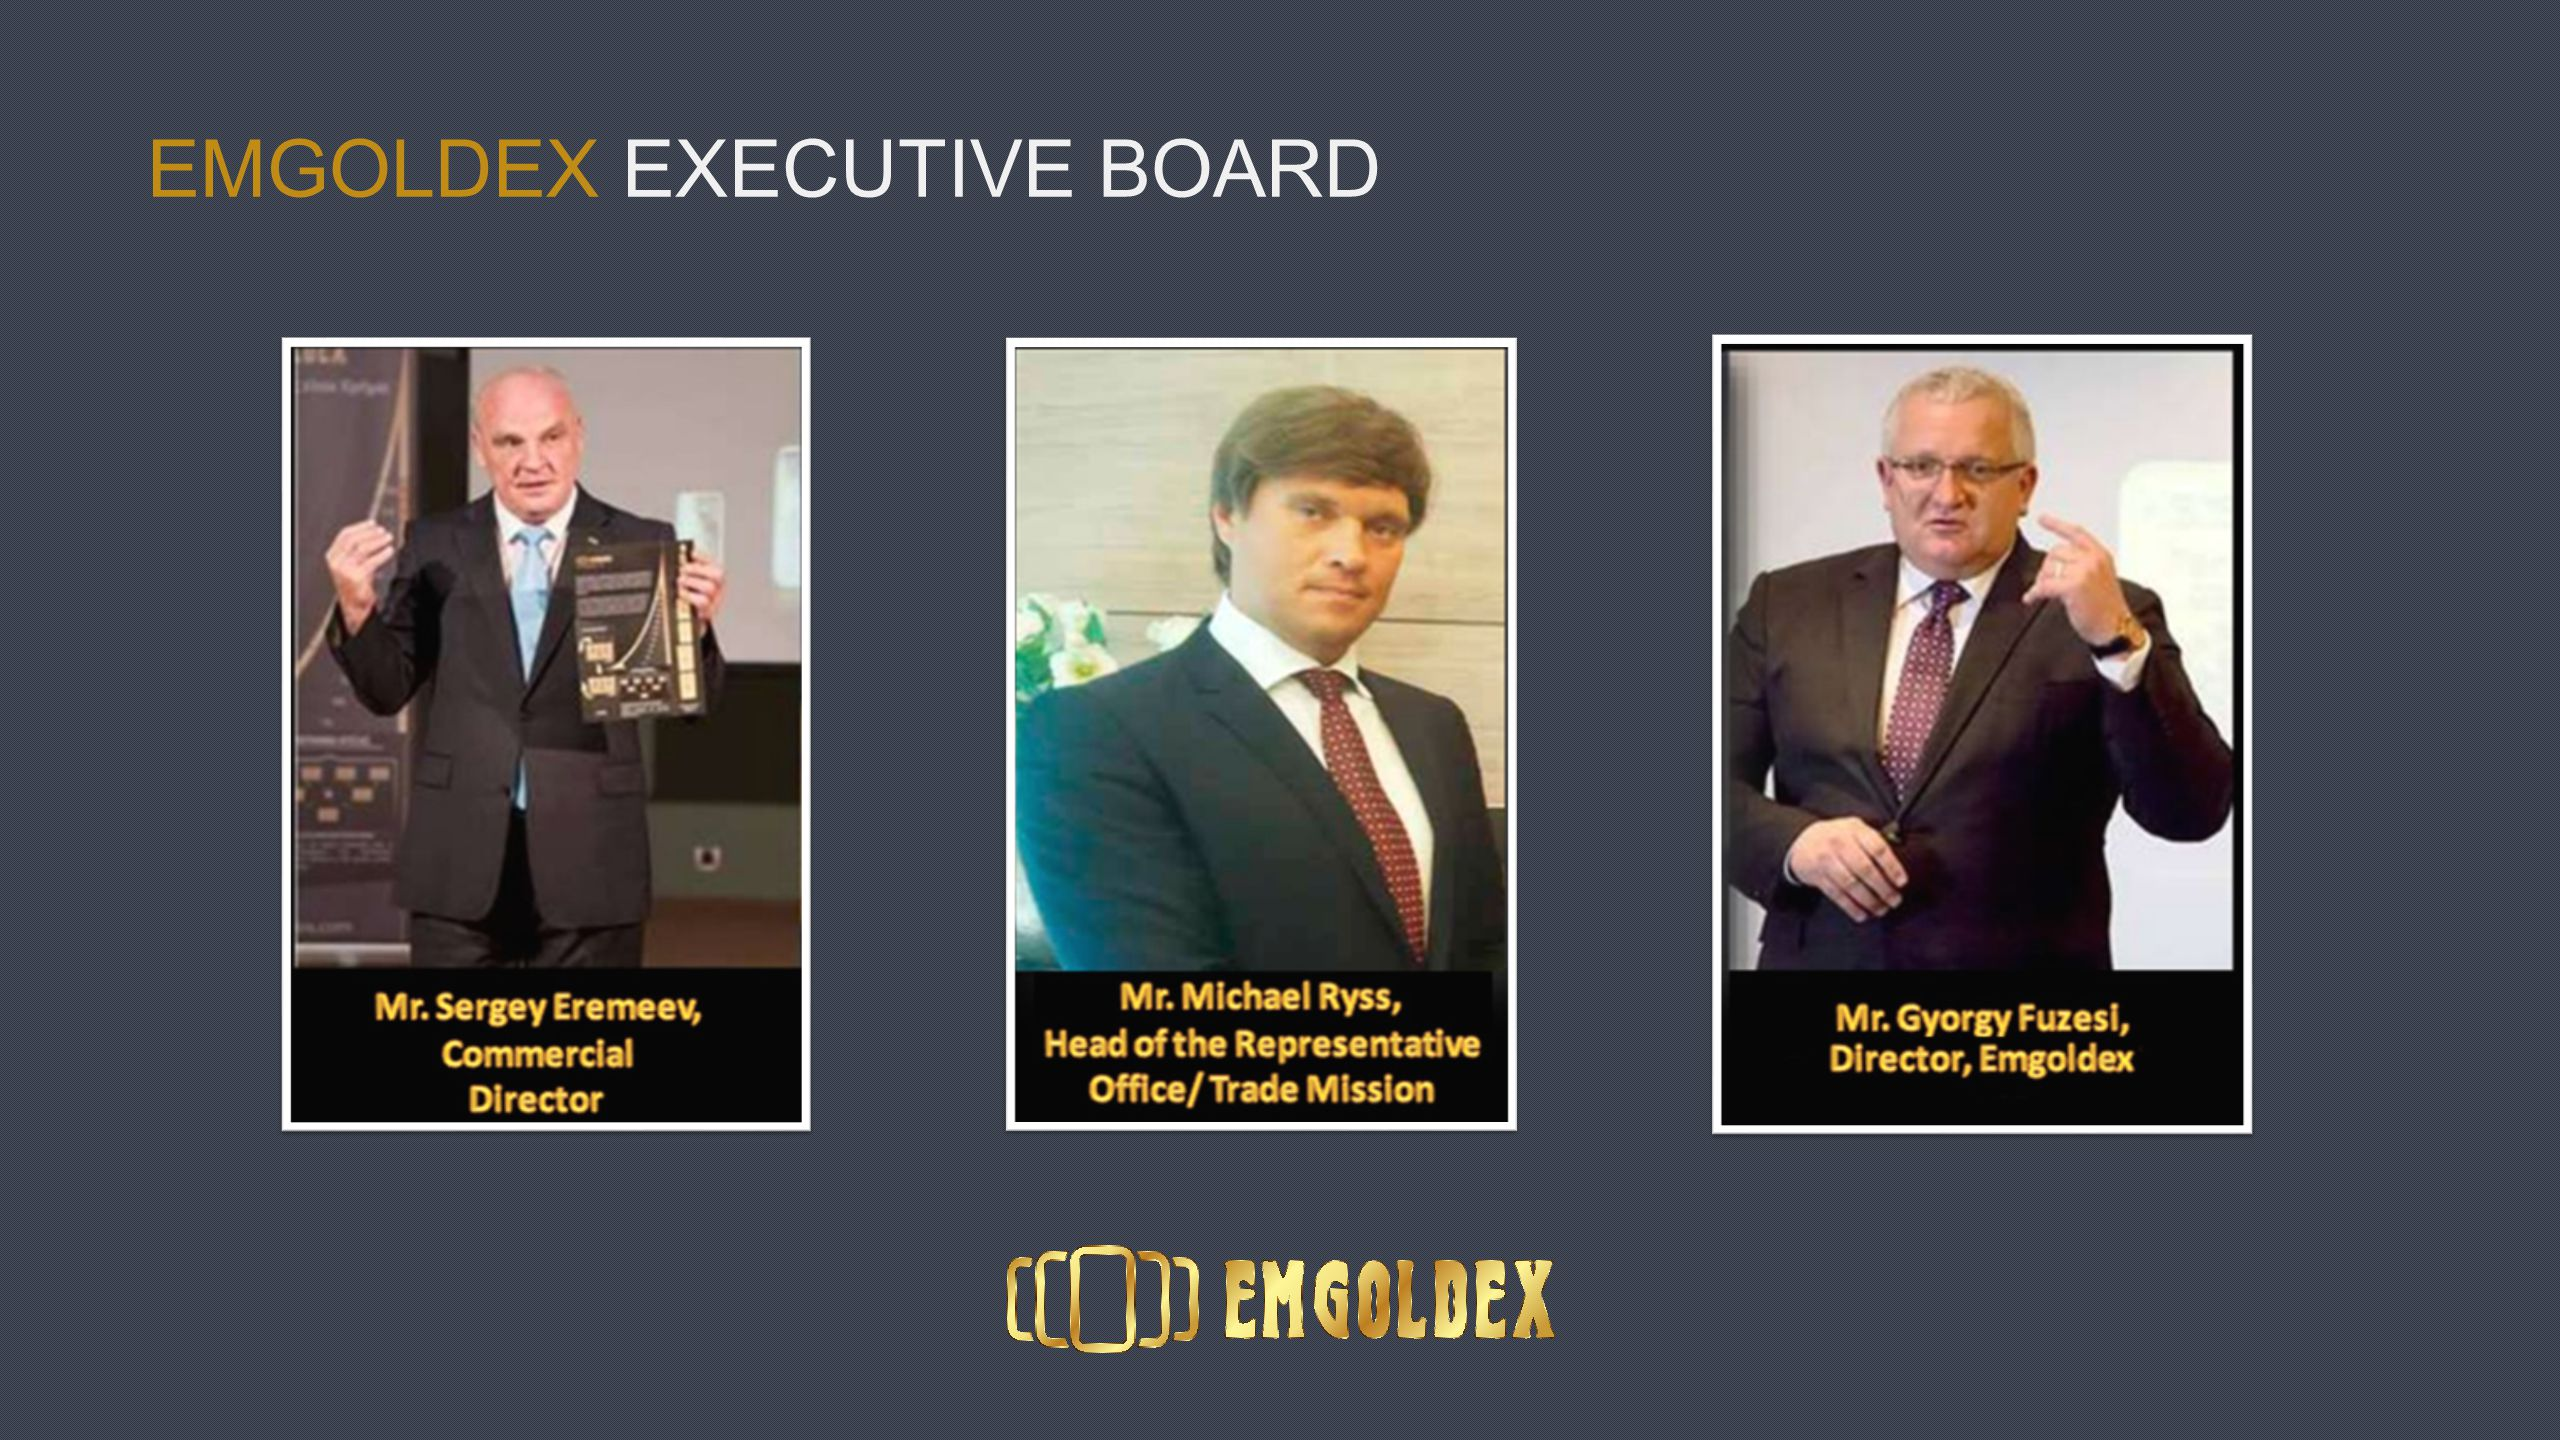 EMGOLDEX EXECUTIVE BOARD